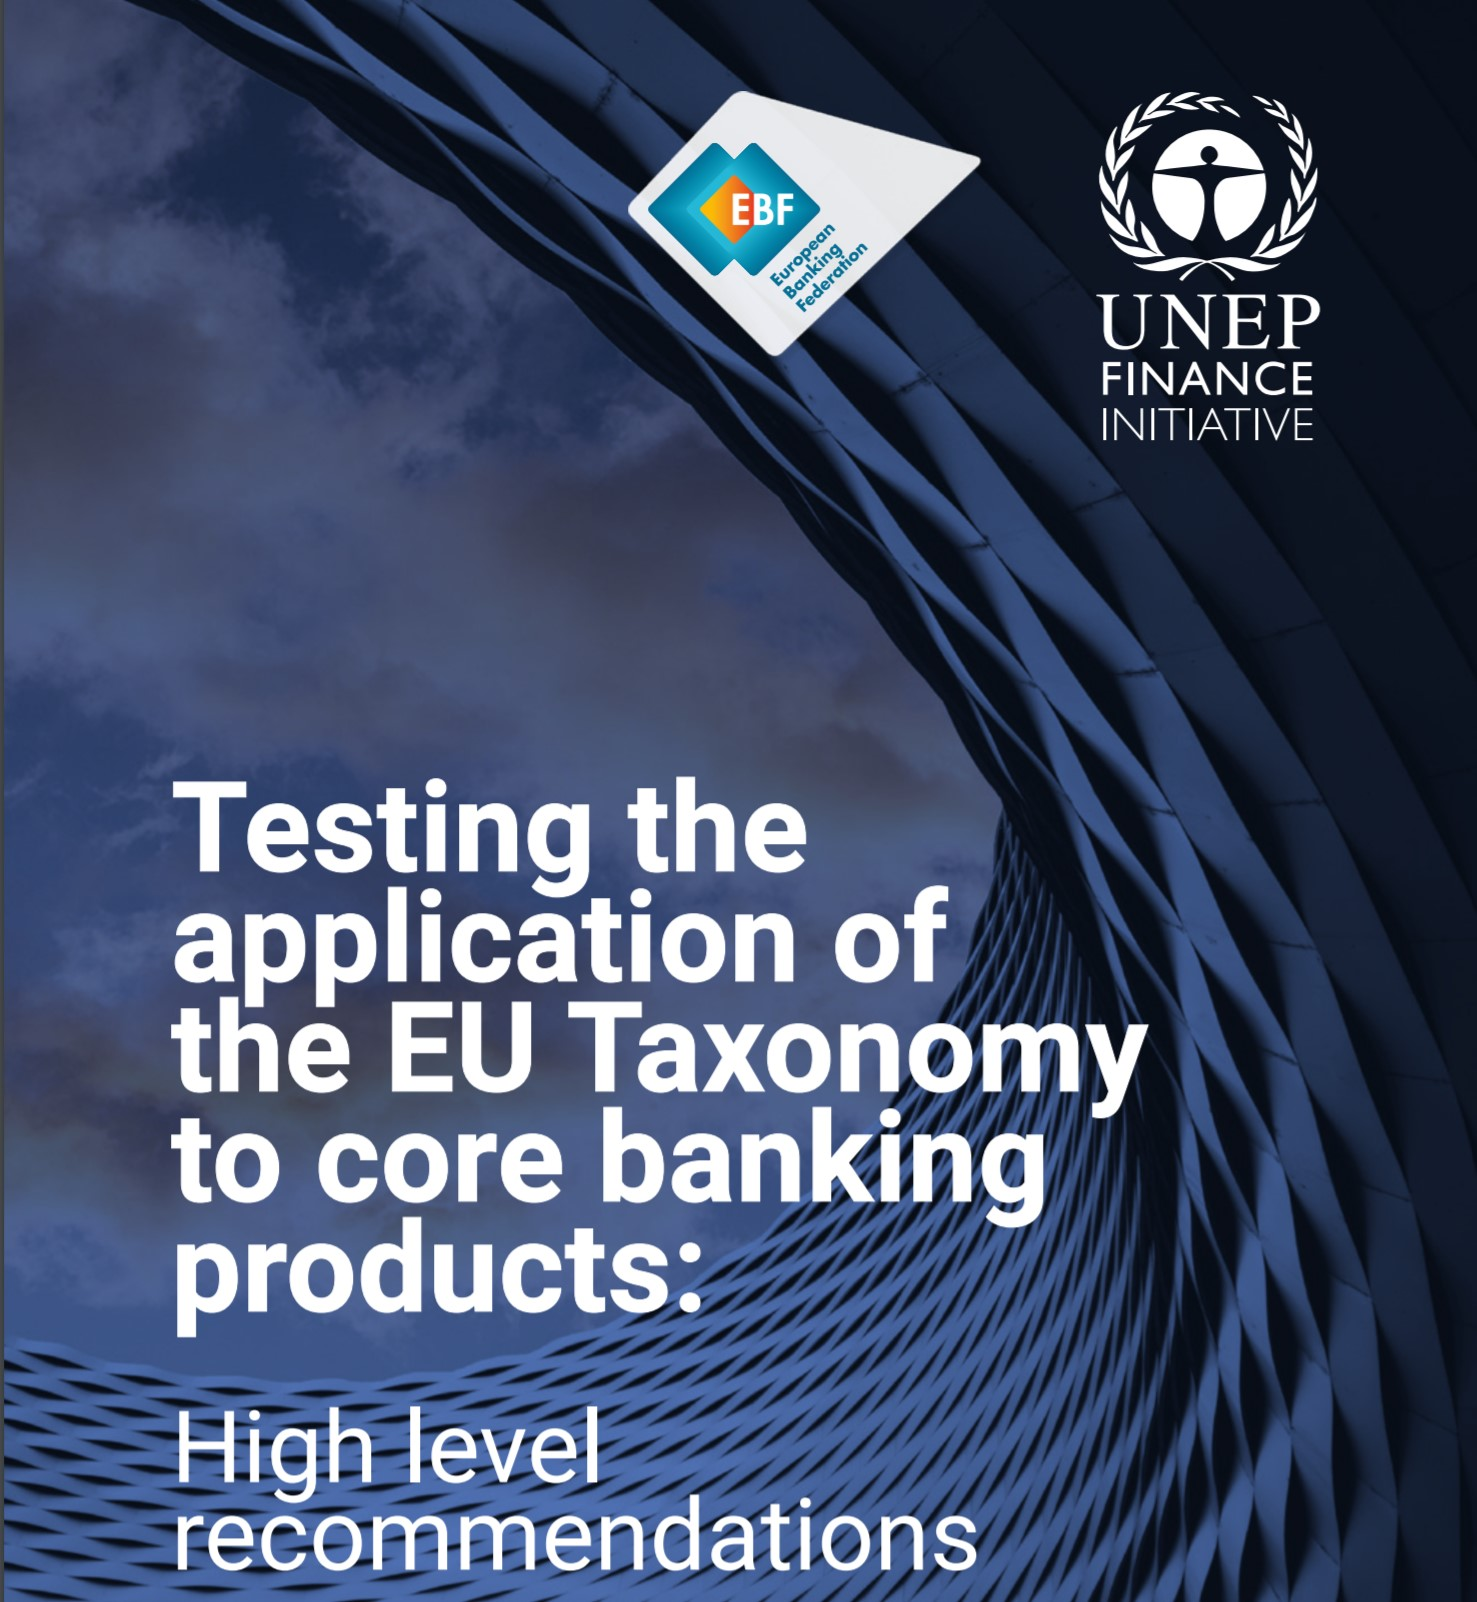 EBF-UNEP FI report outlines path for application of EU Taxonomy to core banking services